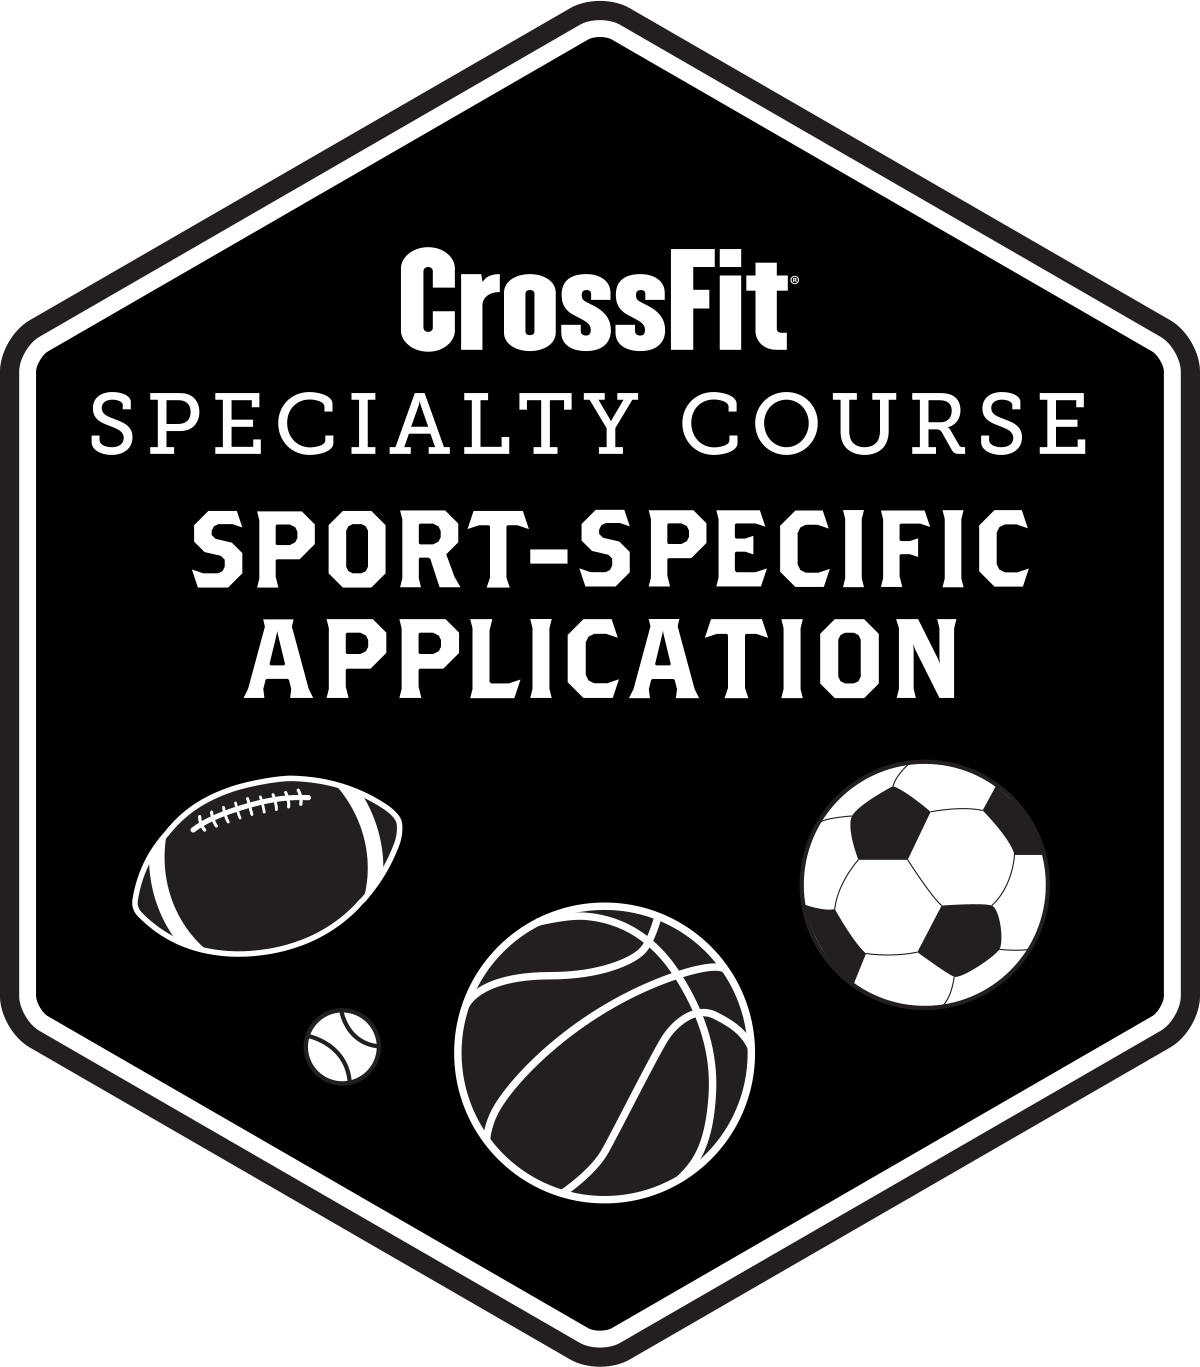 sport specific crossfit forging elite fitness sunday 171126  at creativeand.co